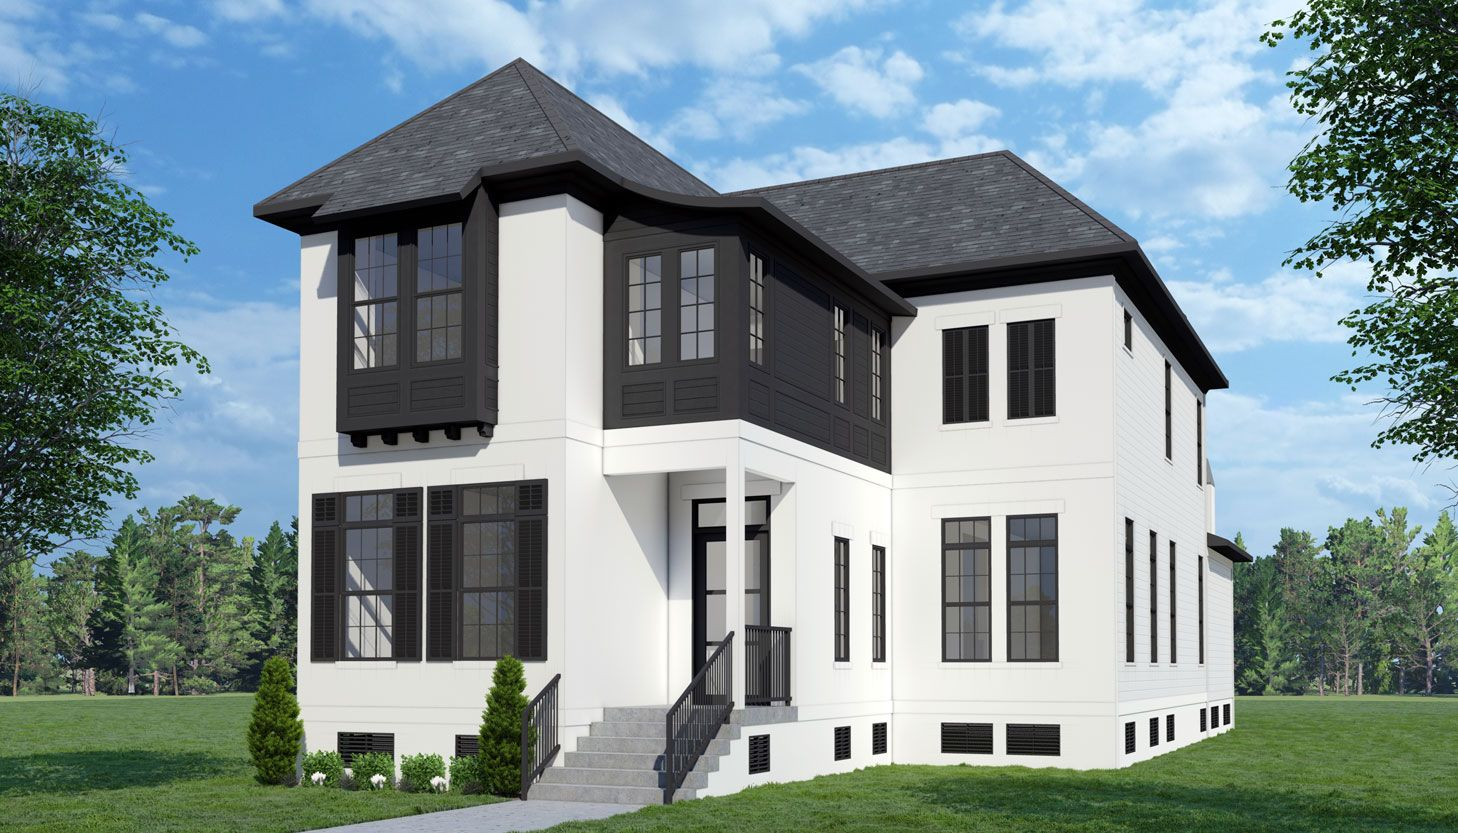 6155-General-Diaz-Reynold-Development-Parade-of-Homes-New-Orleans.jpeg